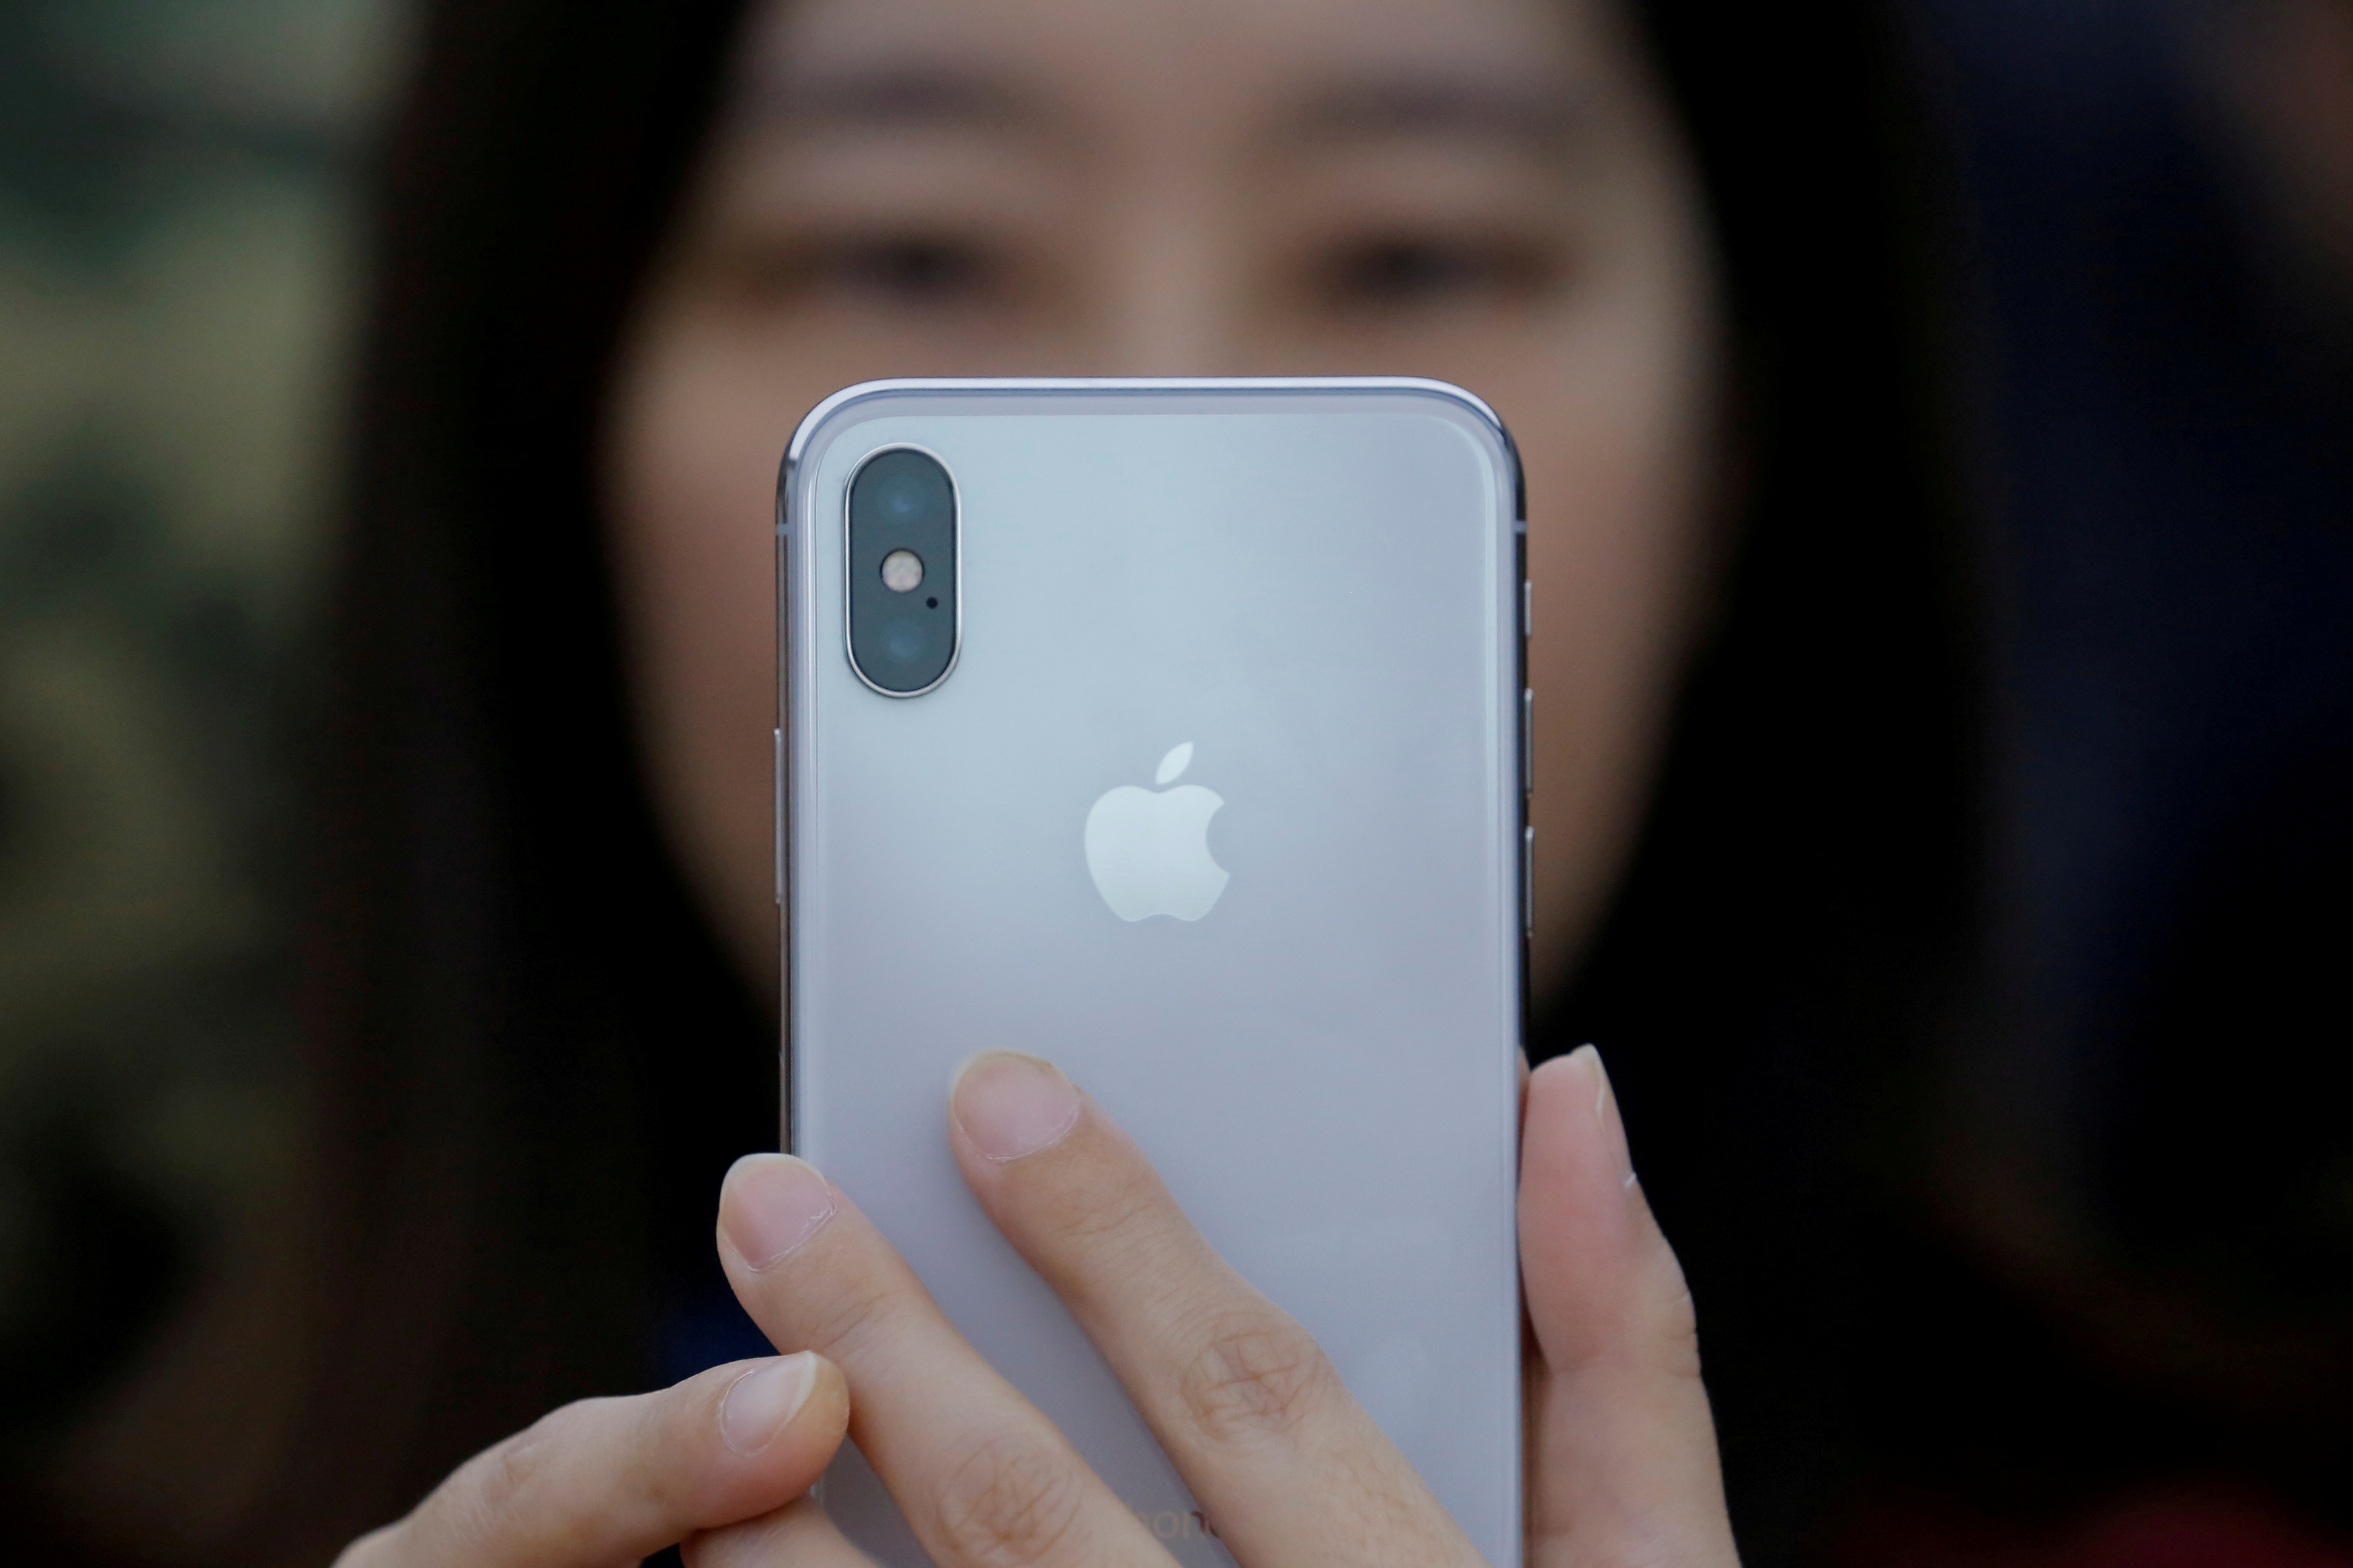 A woman uses an iPhone X during a presentation in Beijing, China on Oct. 31, 2017.